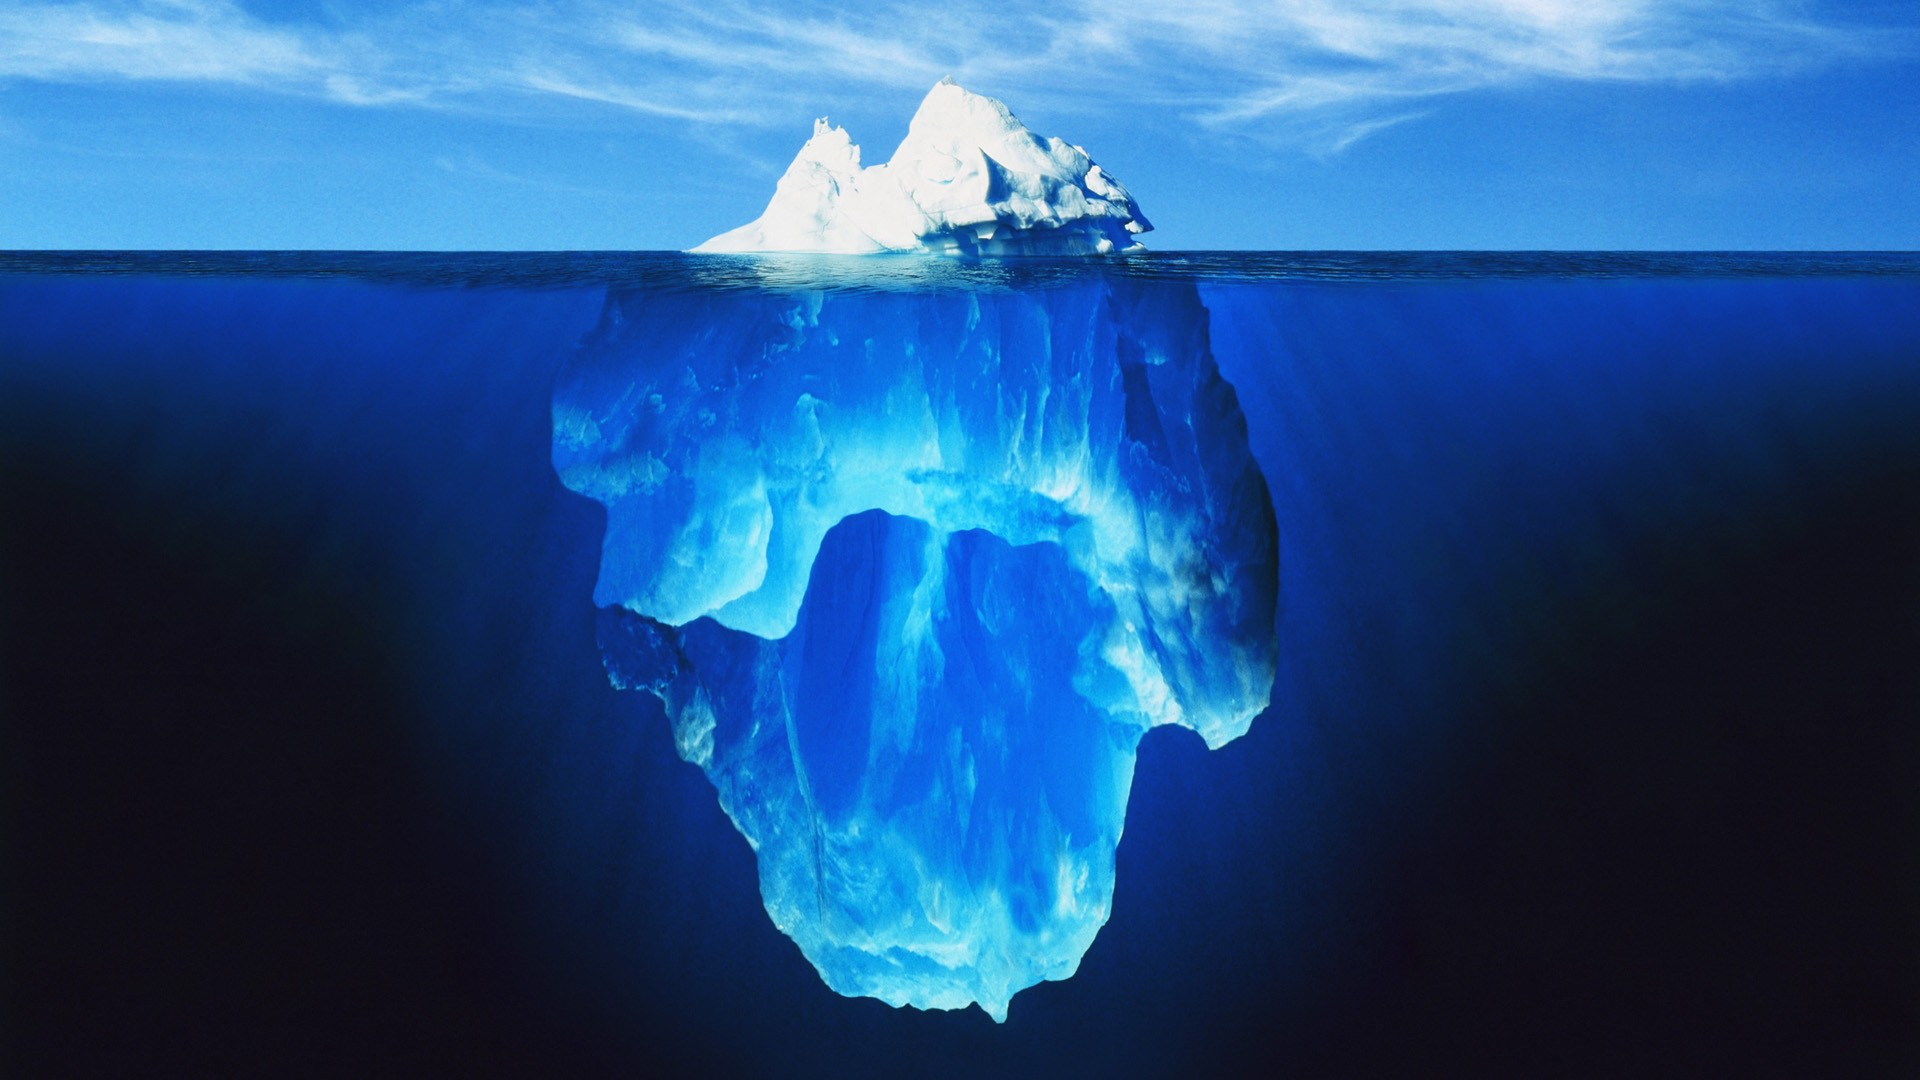 Iceberg above water and under water